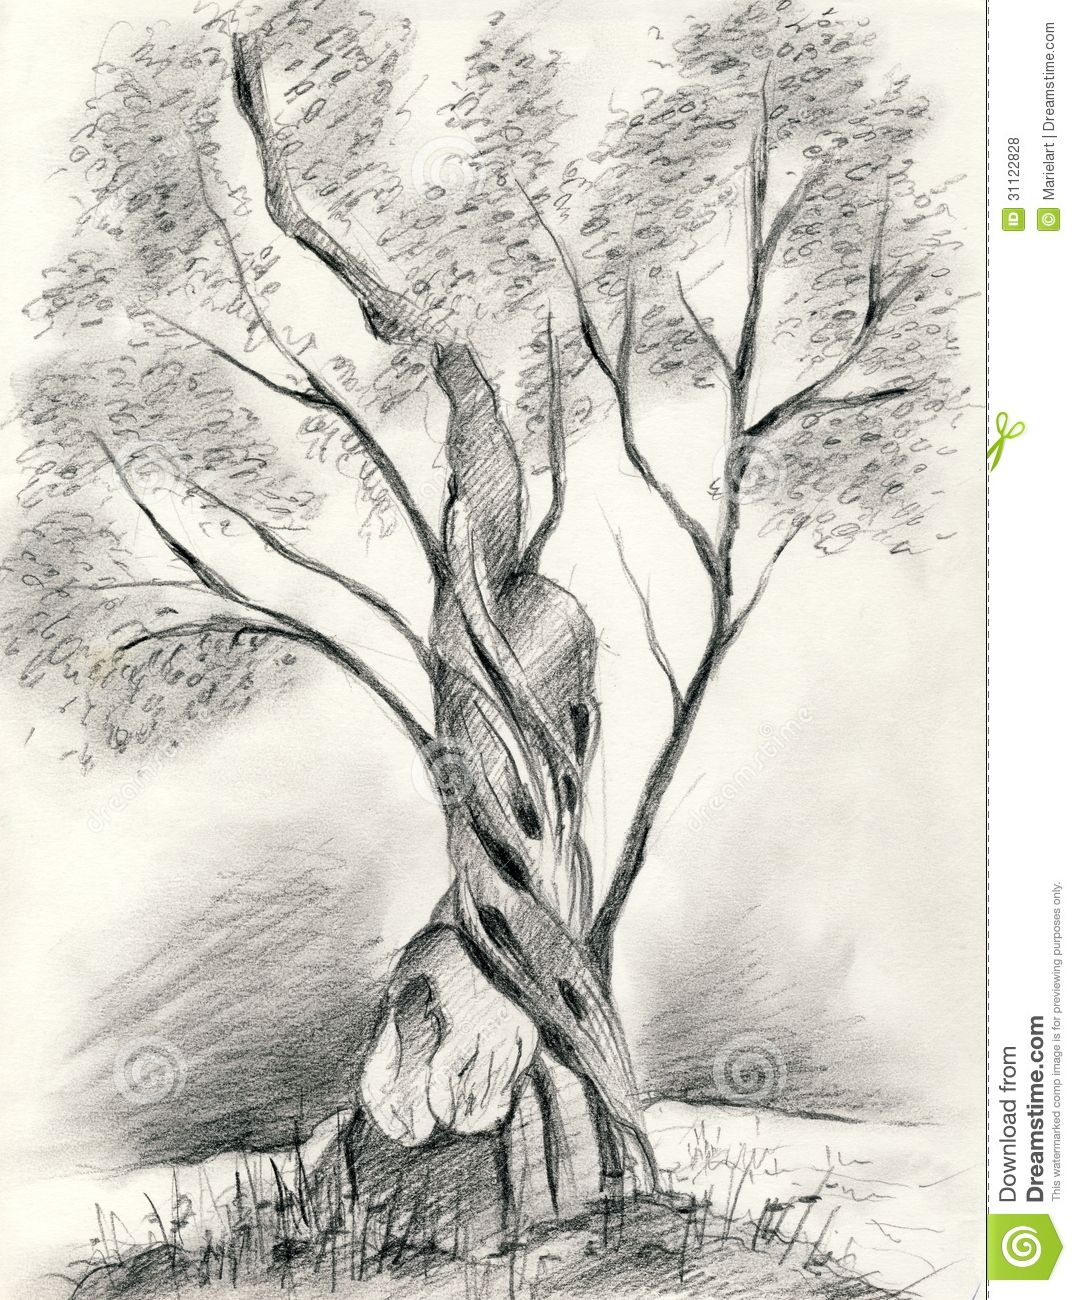 Simple abstract pencil drawings google search abstract pencil drawings painting painting art